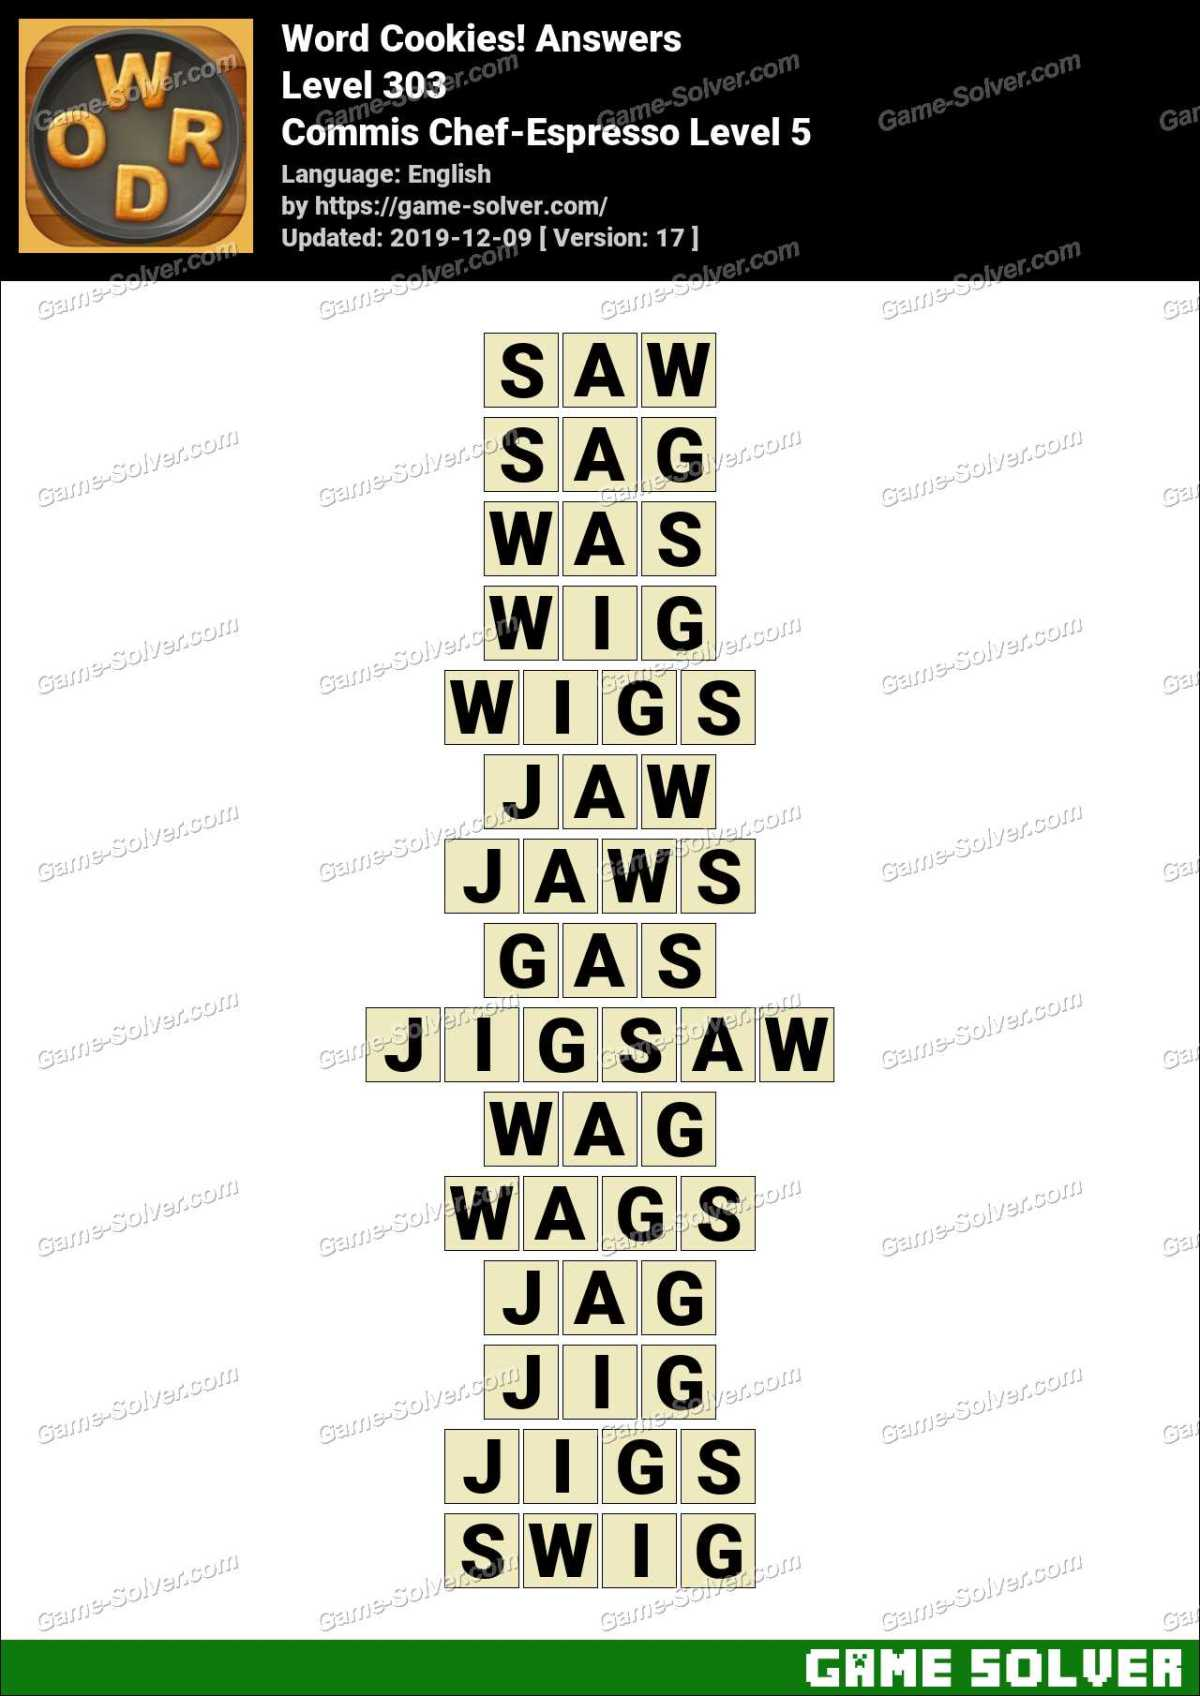 Word Cookies Commis Chef-Espresso Level 5 Answers